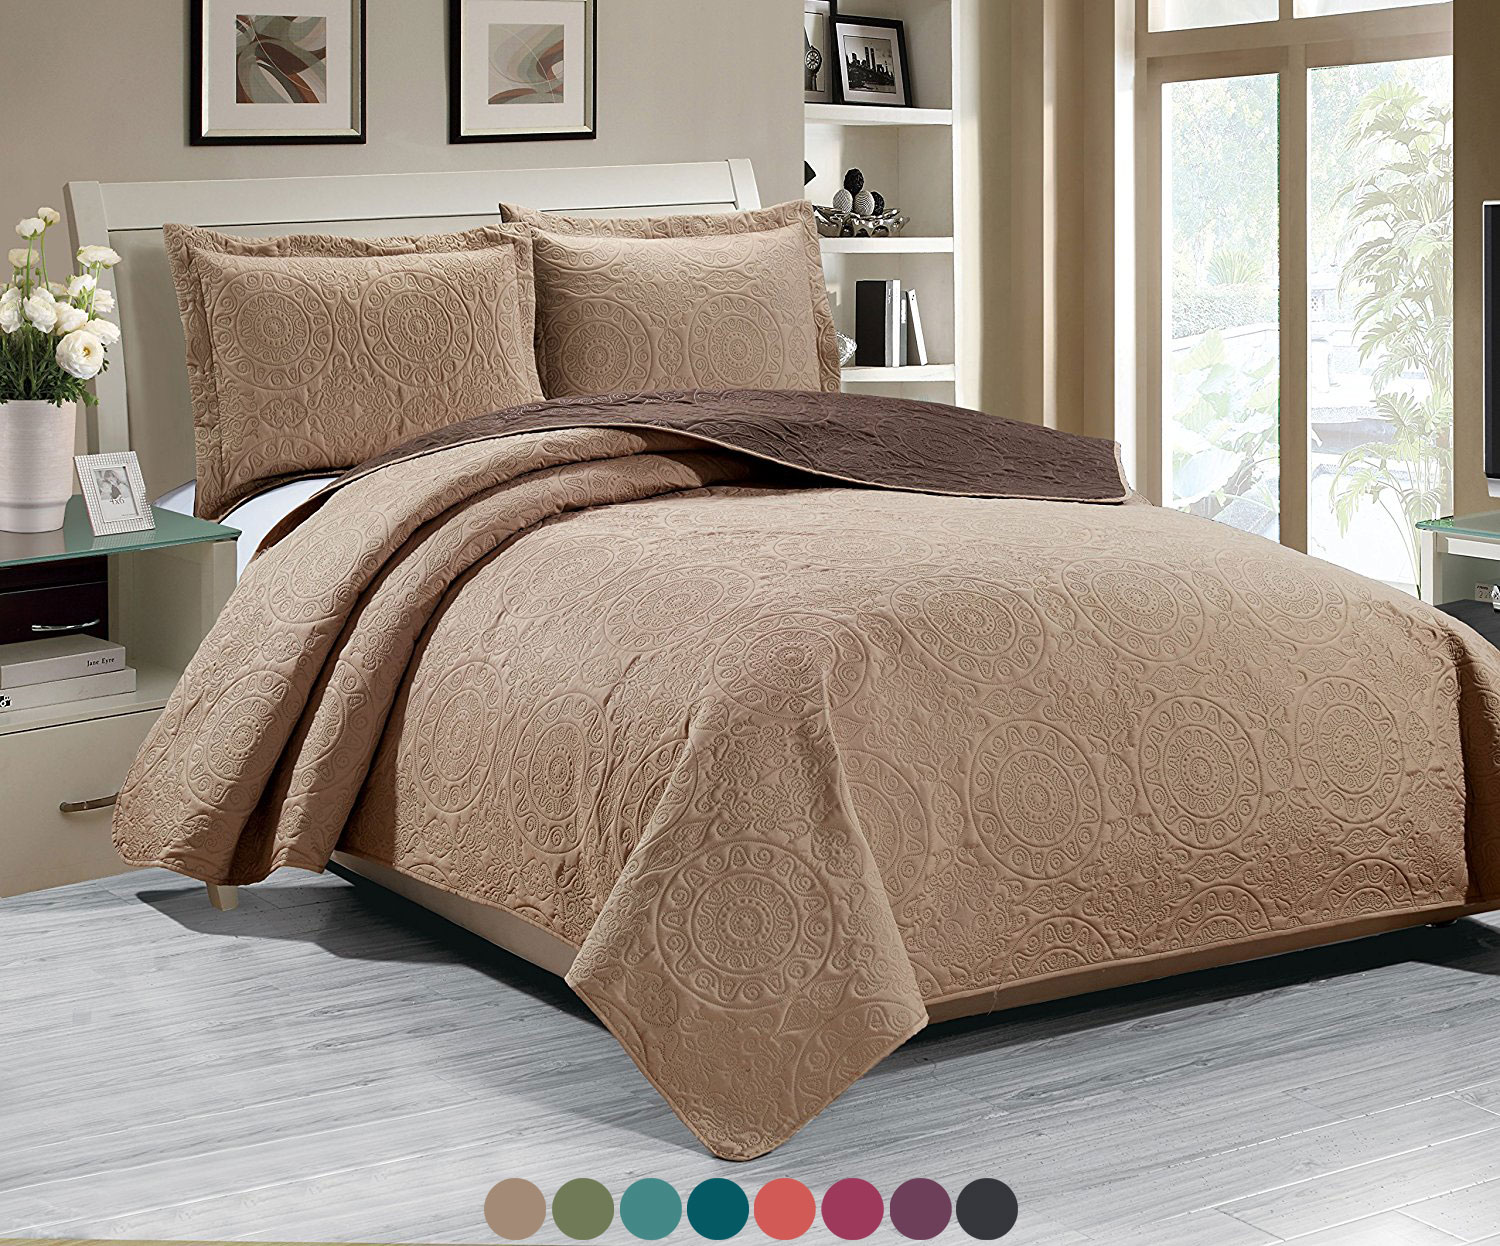 Woven Trends Medallion 3PC Luxury Comforter Quilt Bed Set Reversible ...